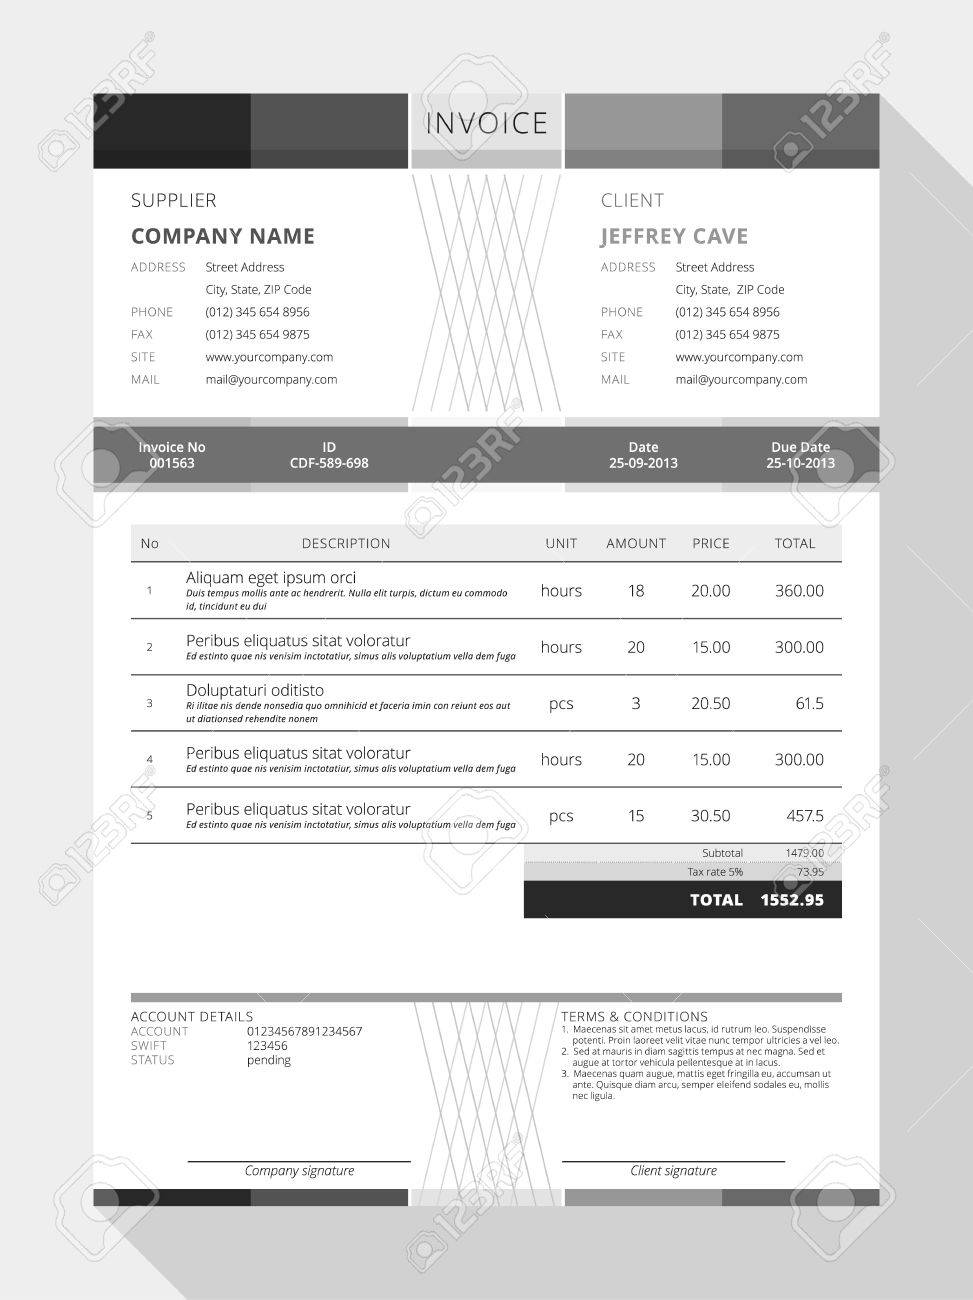 Aaaaeroincus  Mesmerizing Design An Invoice  Professional Graphic Design Invoice  With Exquisite Vector Customizable Invoice Form Template Design Vector   Design An Invoice With Beauteous Check Receipts Also How To File Receipts In Addition Delta Ticket Receipt And Store Receipts Online As Well As Cash Receipts Journal Example Additionally Delta Airline Receipt From Happytomco With Aaaaeroincus  Exquisite Design An Invoice  Professional Graphic Design Invoice  With Beauteous Vector Customizable Invoice Form Template Design Vector   Design An Invoice And Mesmerizing Check Receipts Also How To File Receipts In Addition Delta Ticket Receipt From Happytomco